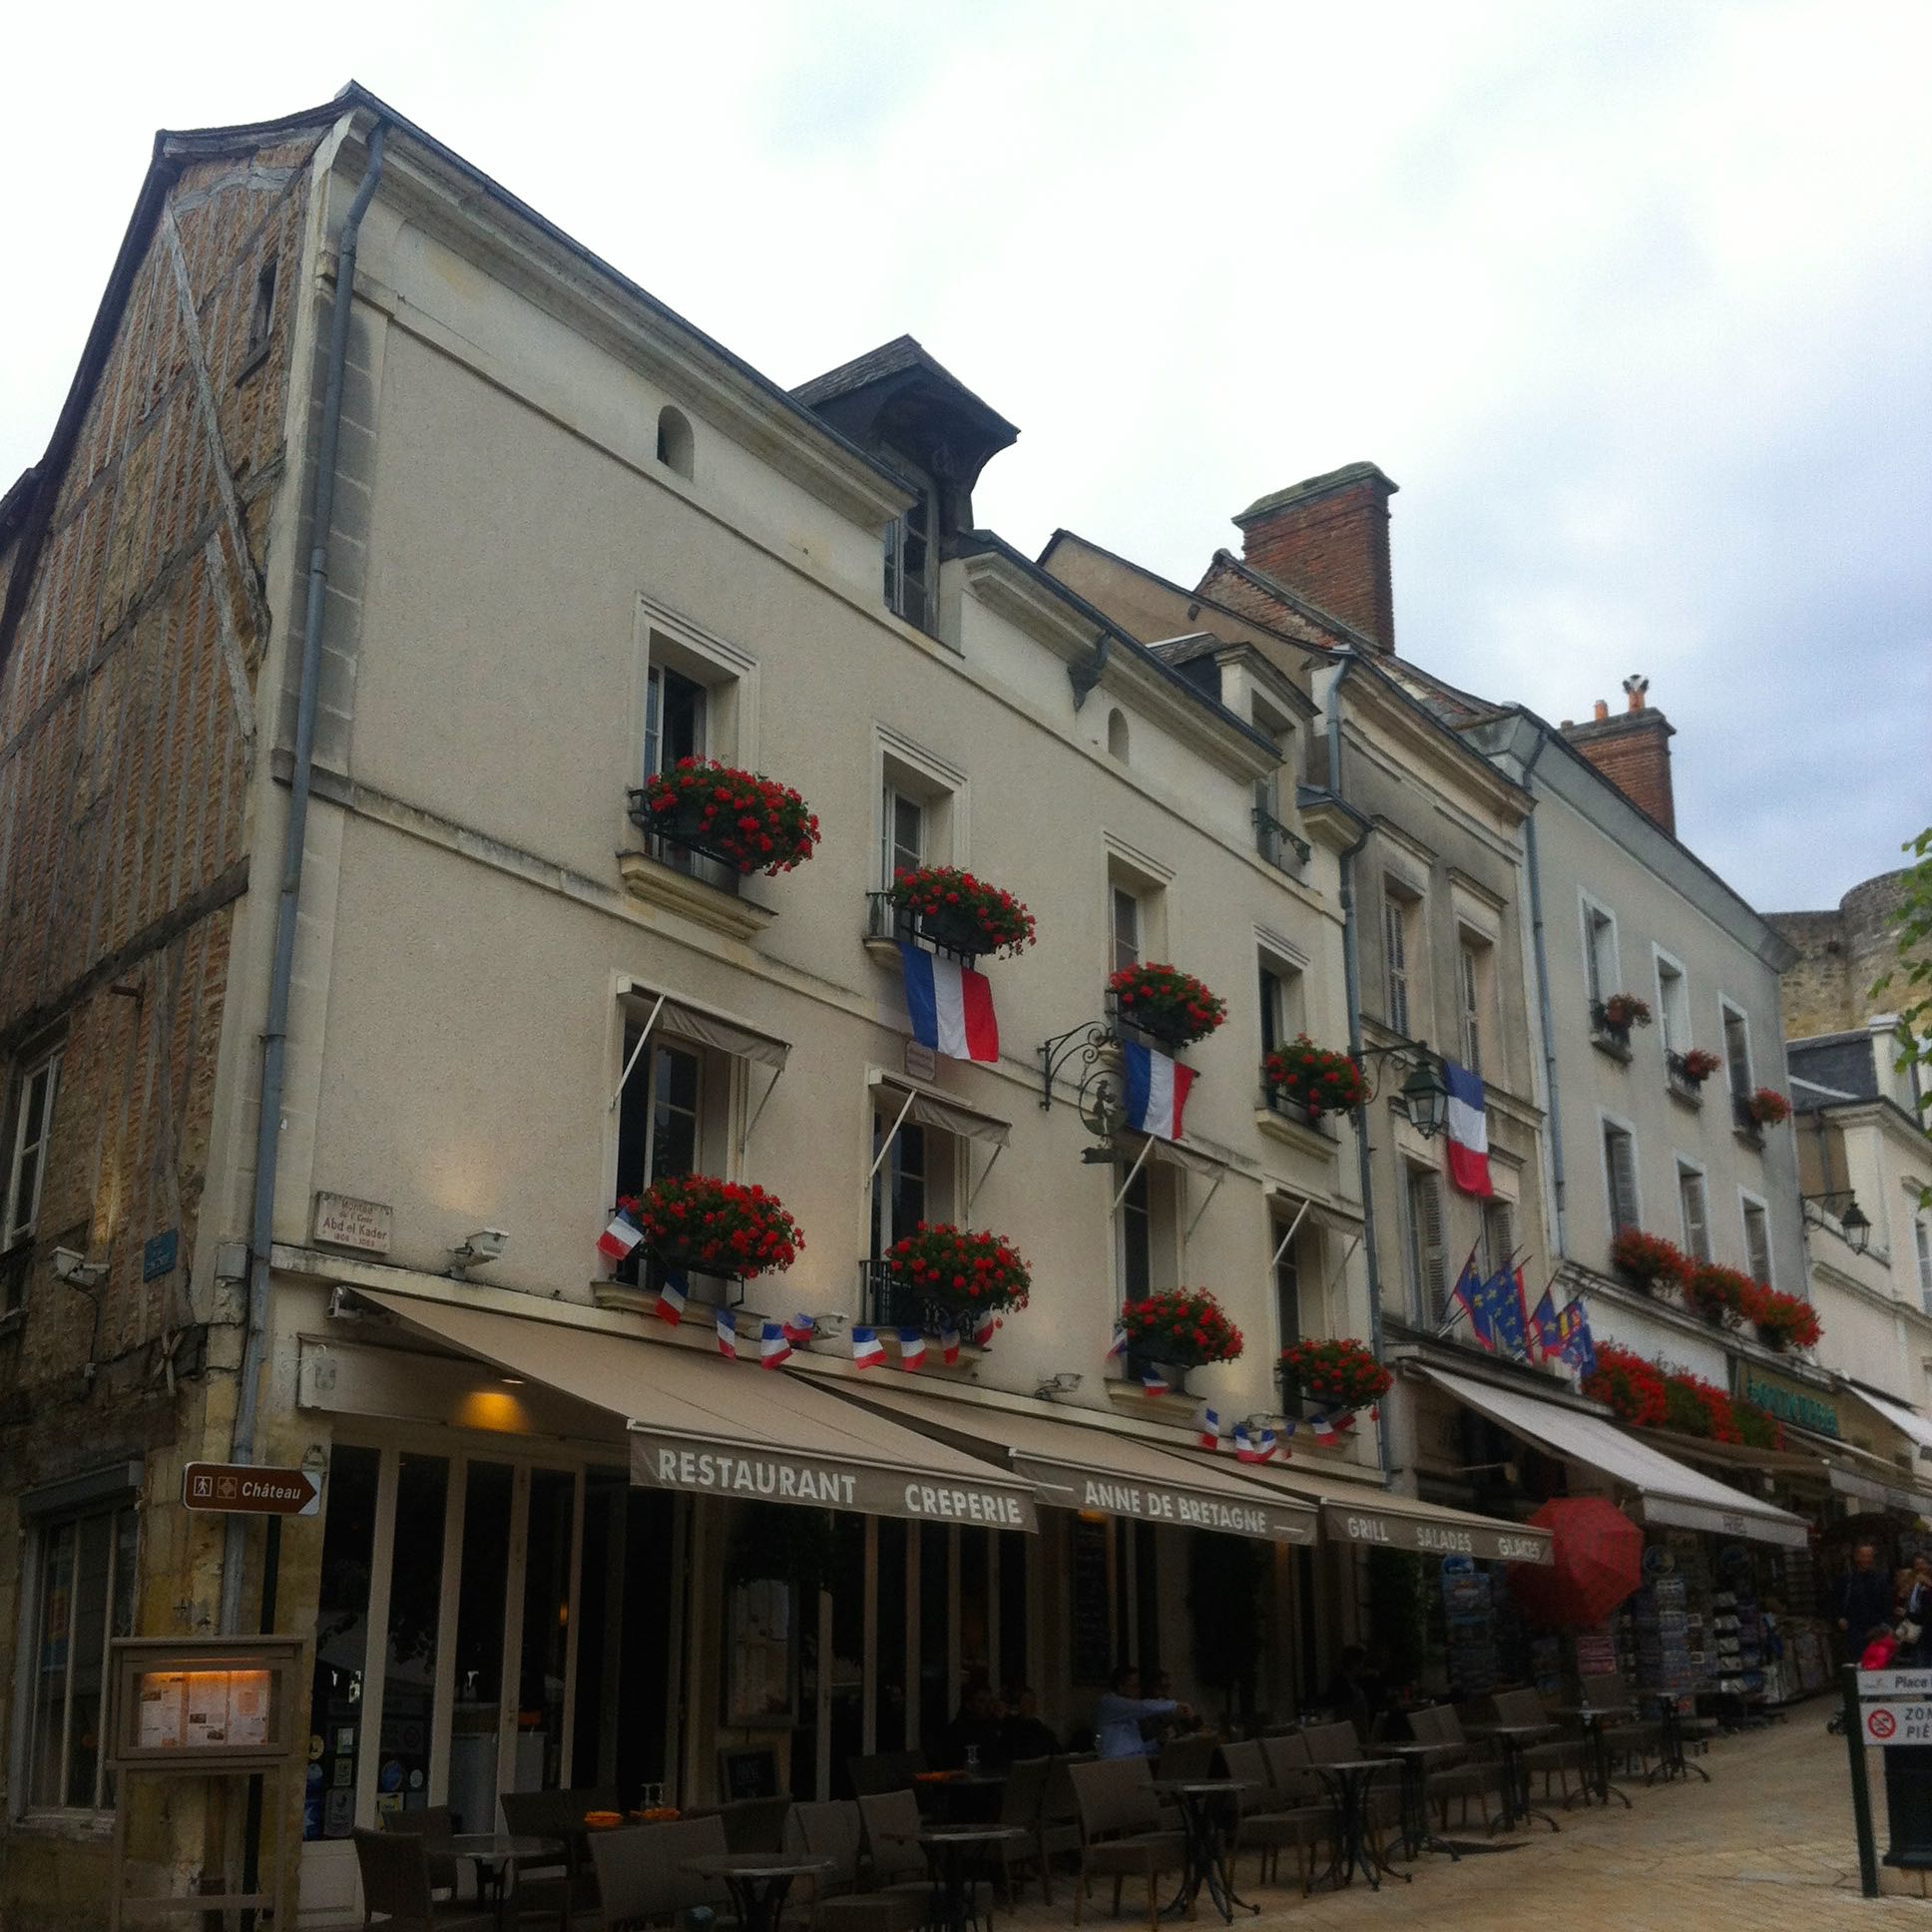 arriving in the town at Amboise